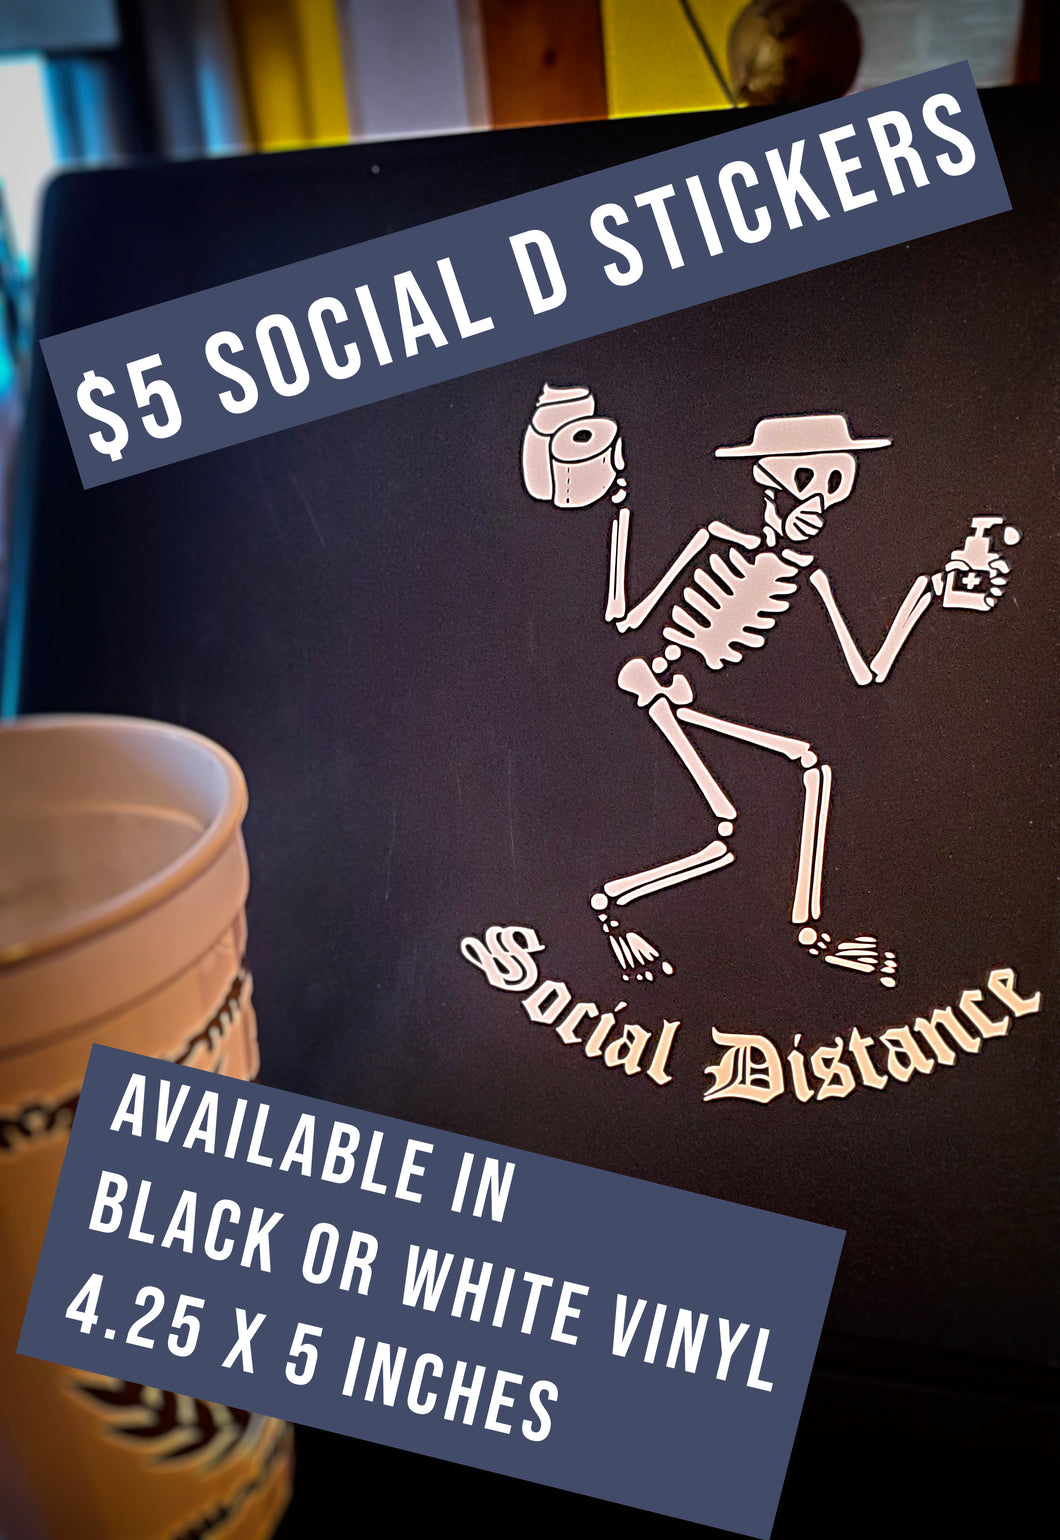 Social Distance Vinyl Stickers